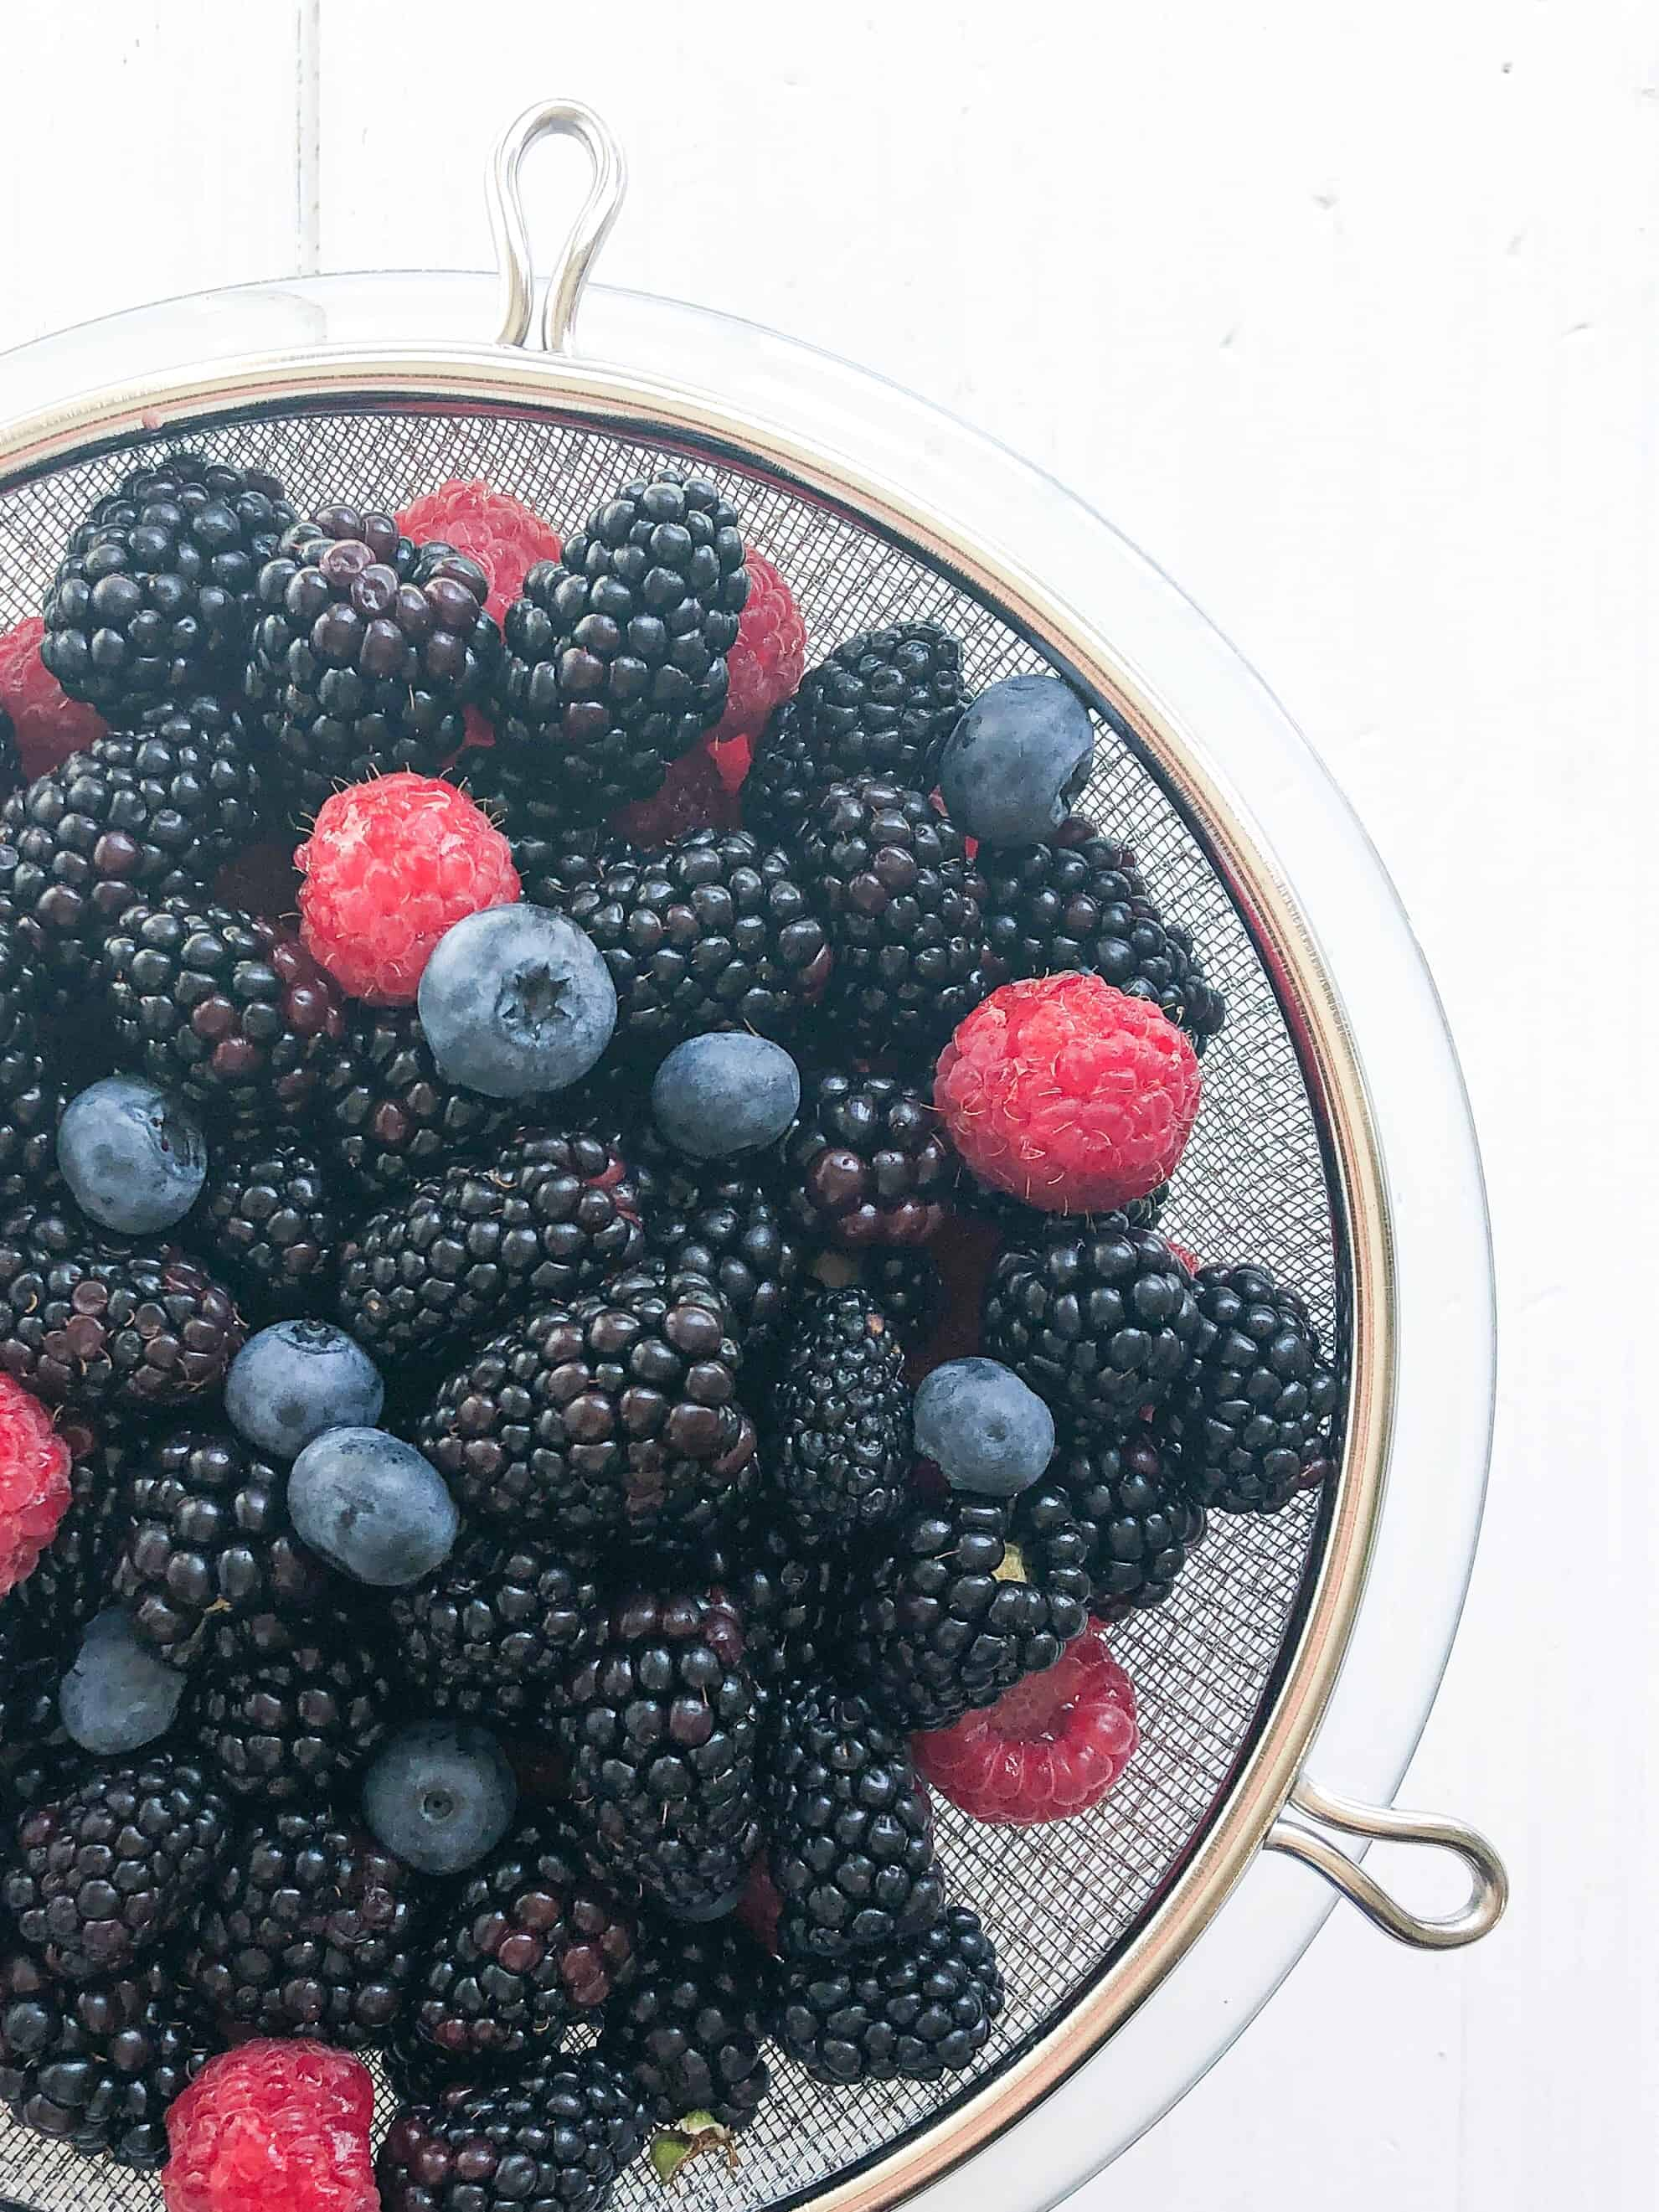 A bowl of fresh berries in a strainer